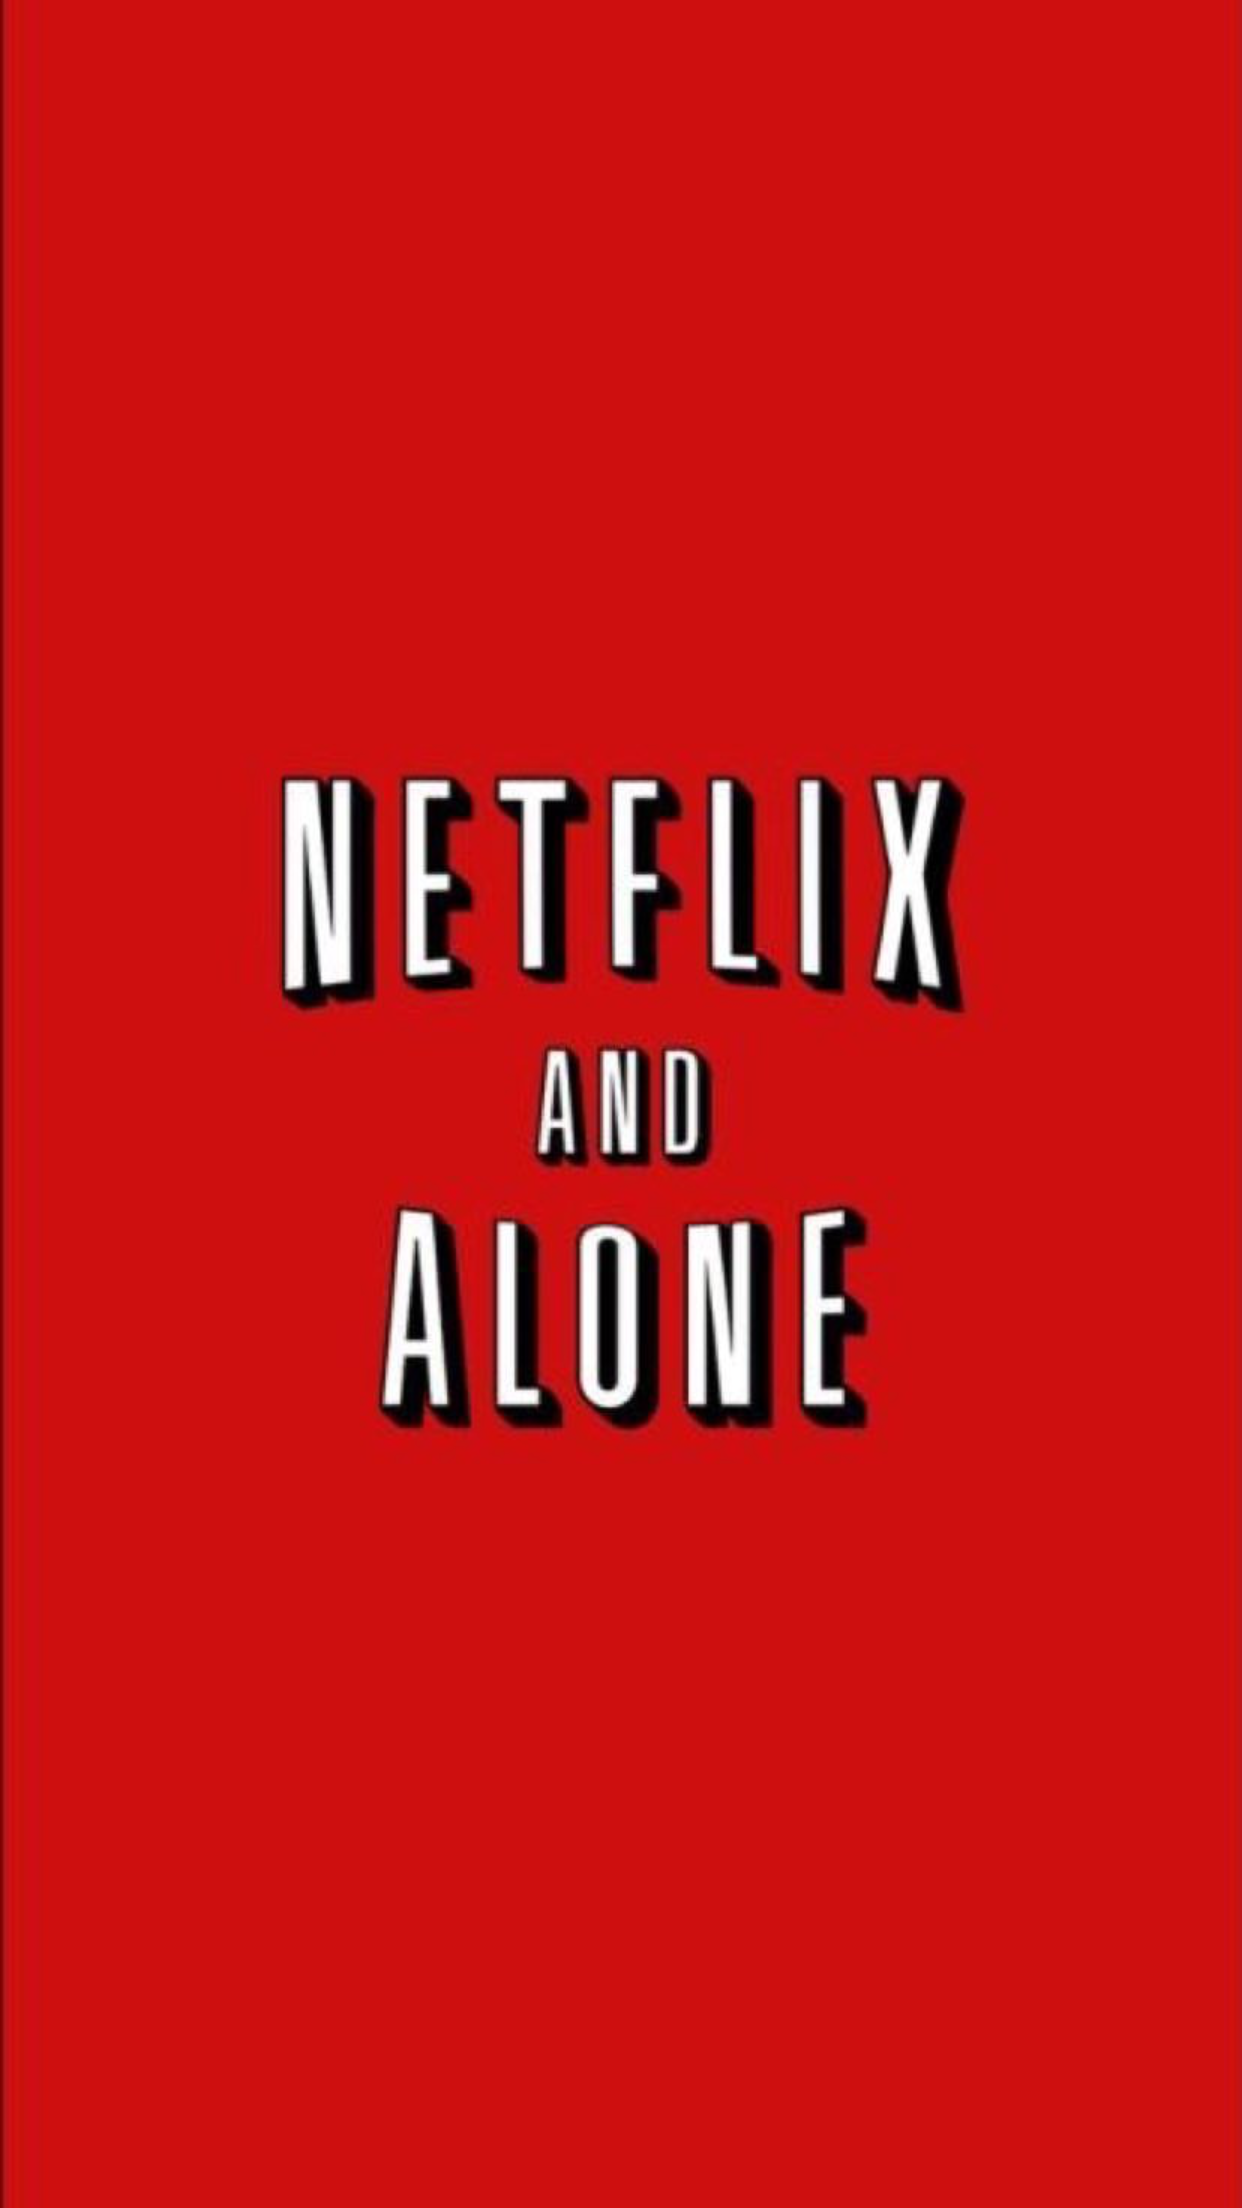 Netflix Alone Wallpaper Wallpapers Pin Lovesherworld With